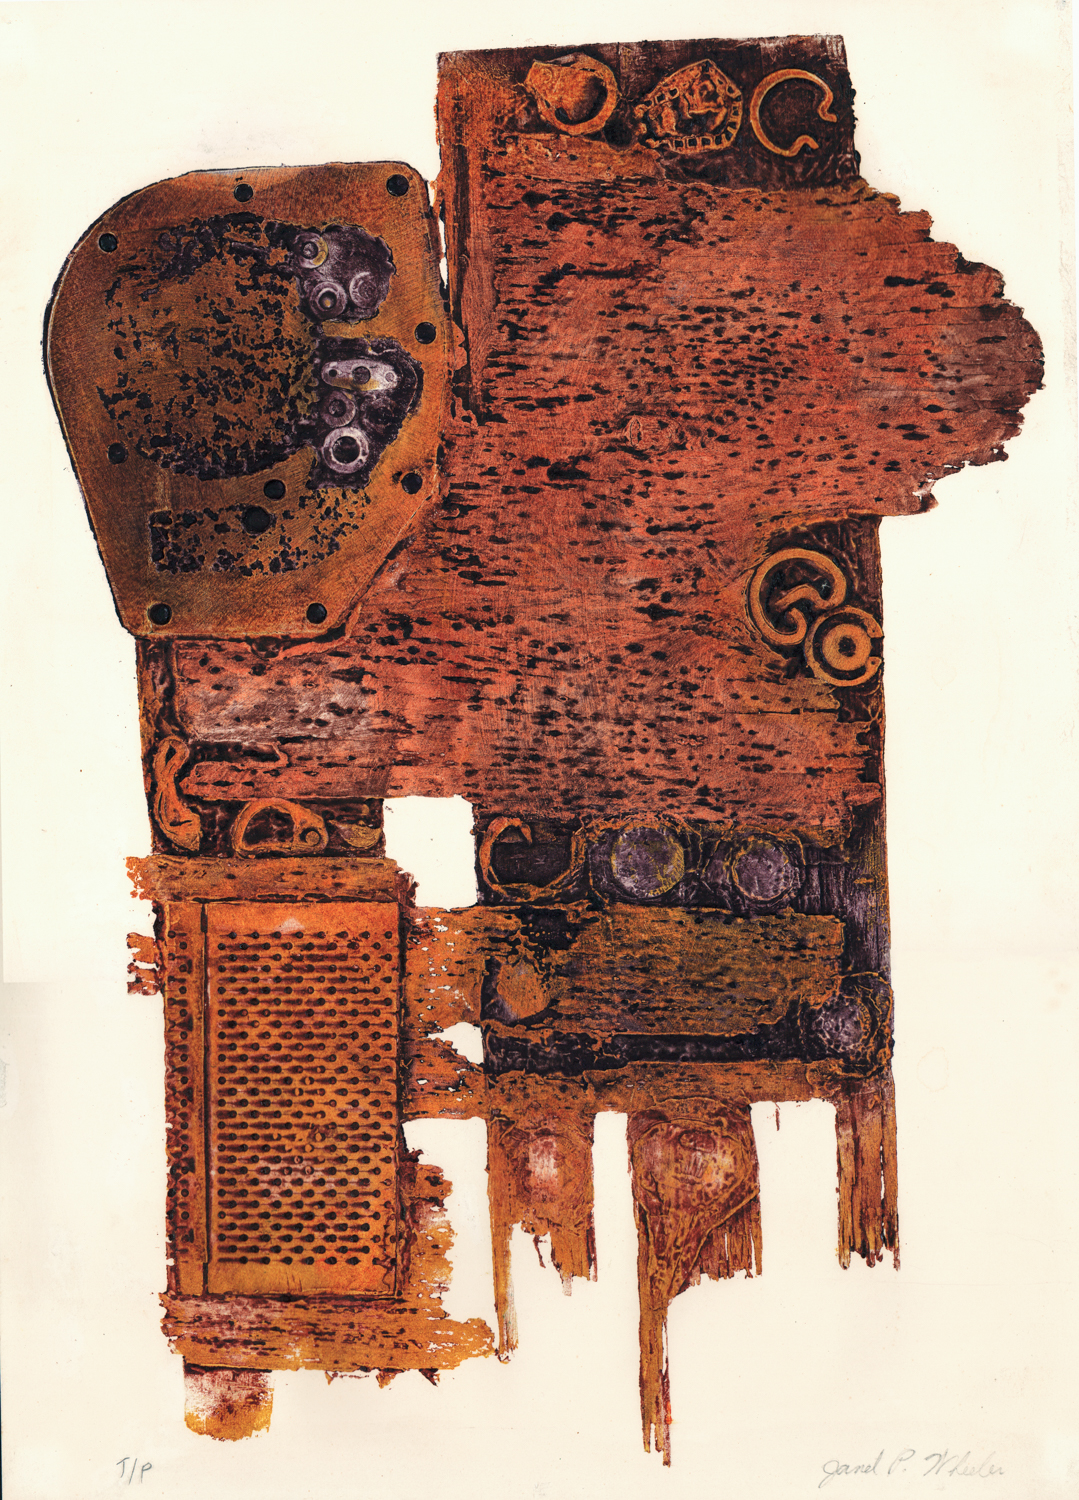 Untitled (Orange/Brown) - dated July 1 1981 - Collagraph - 18